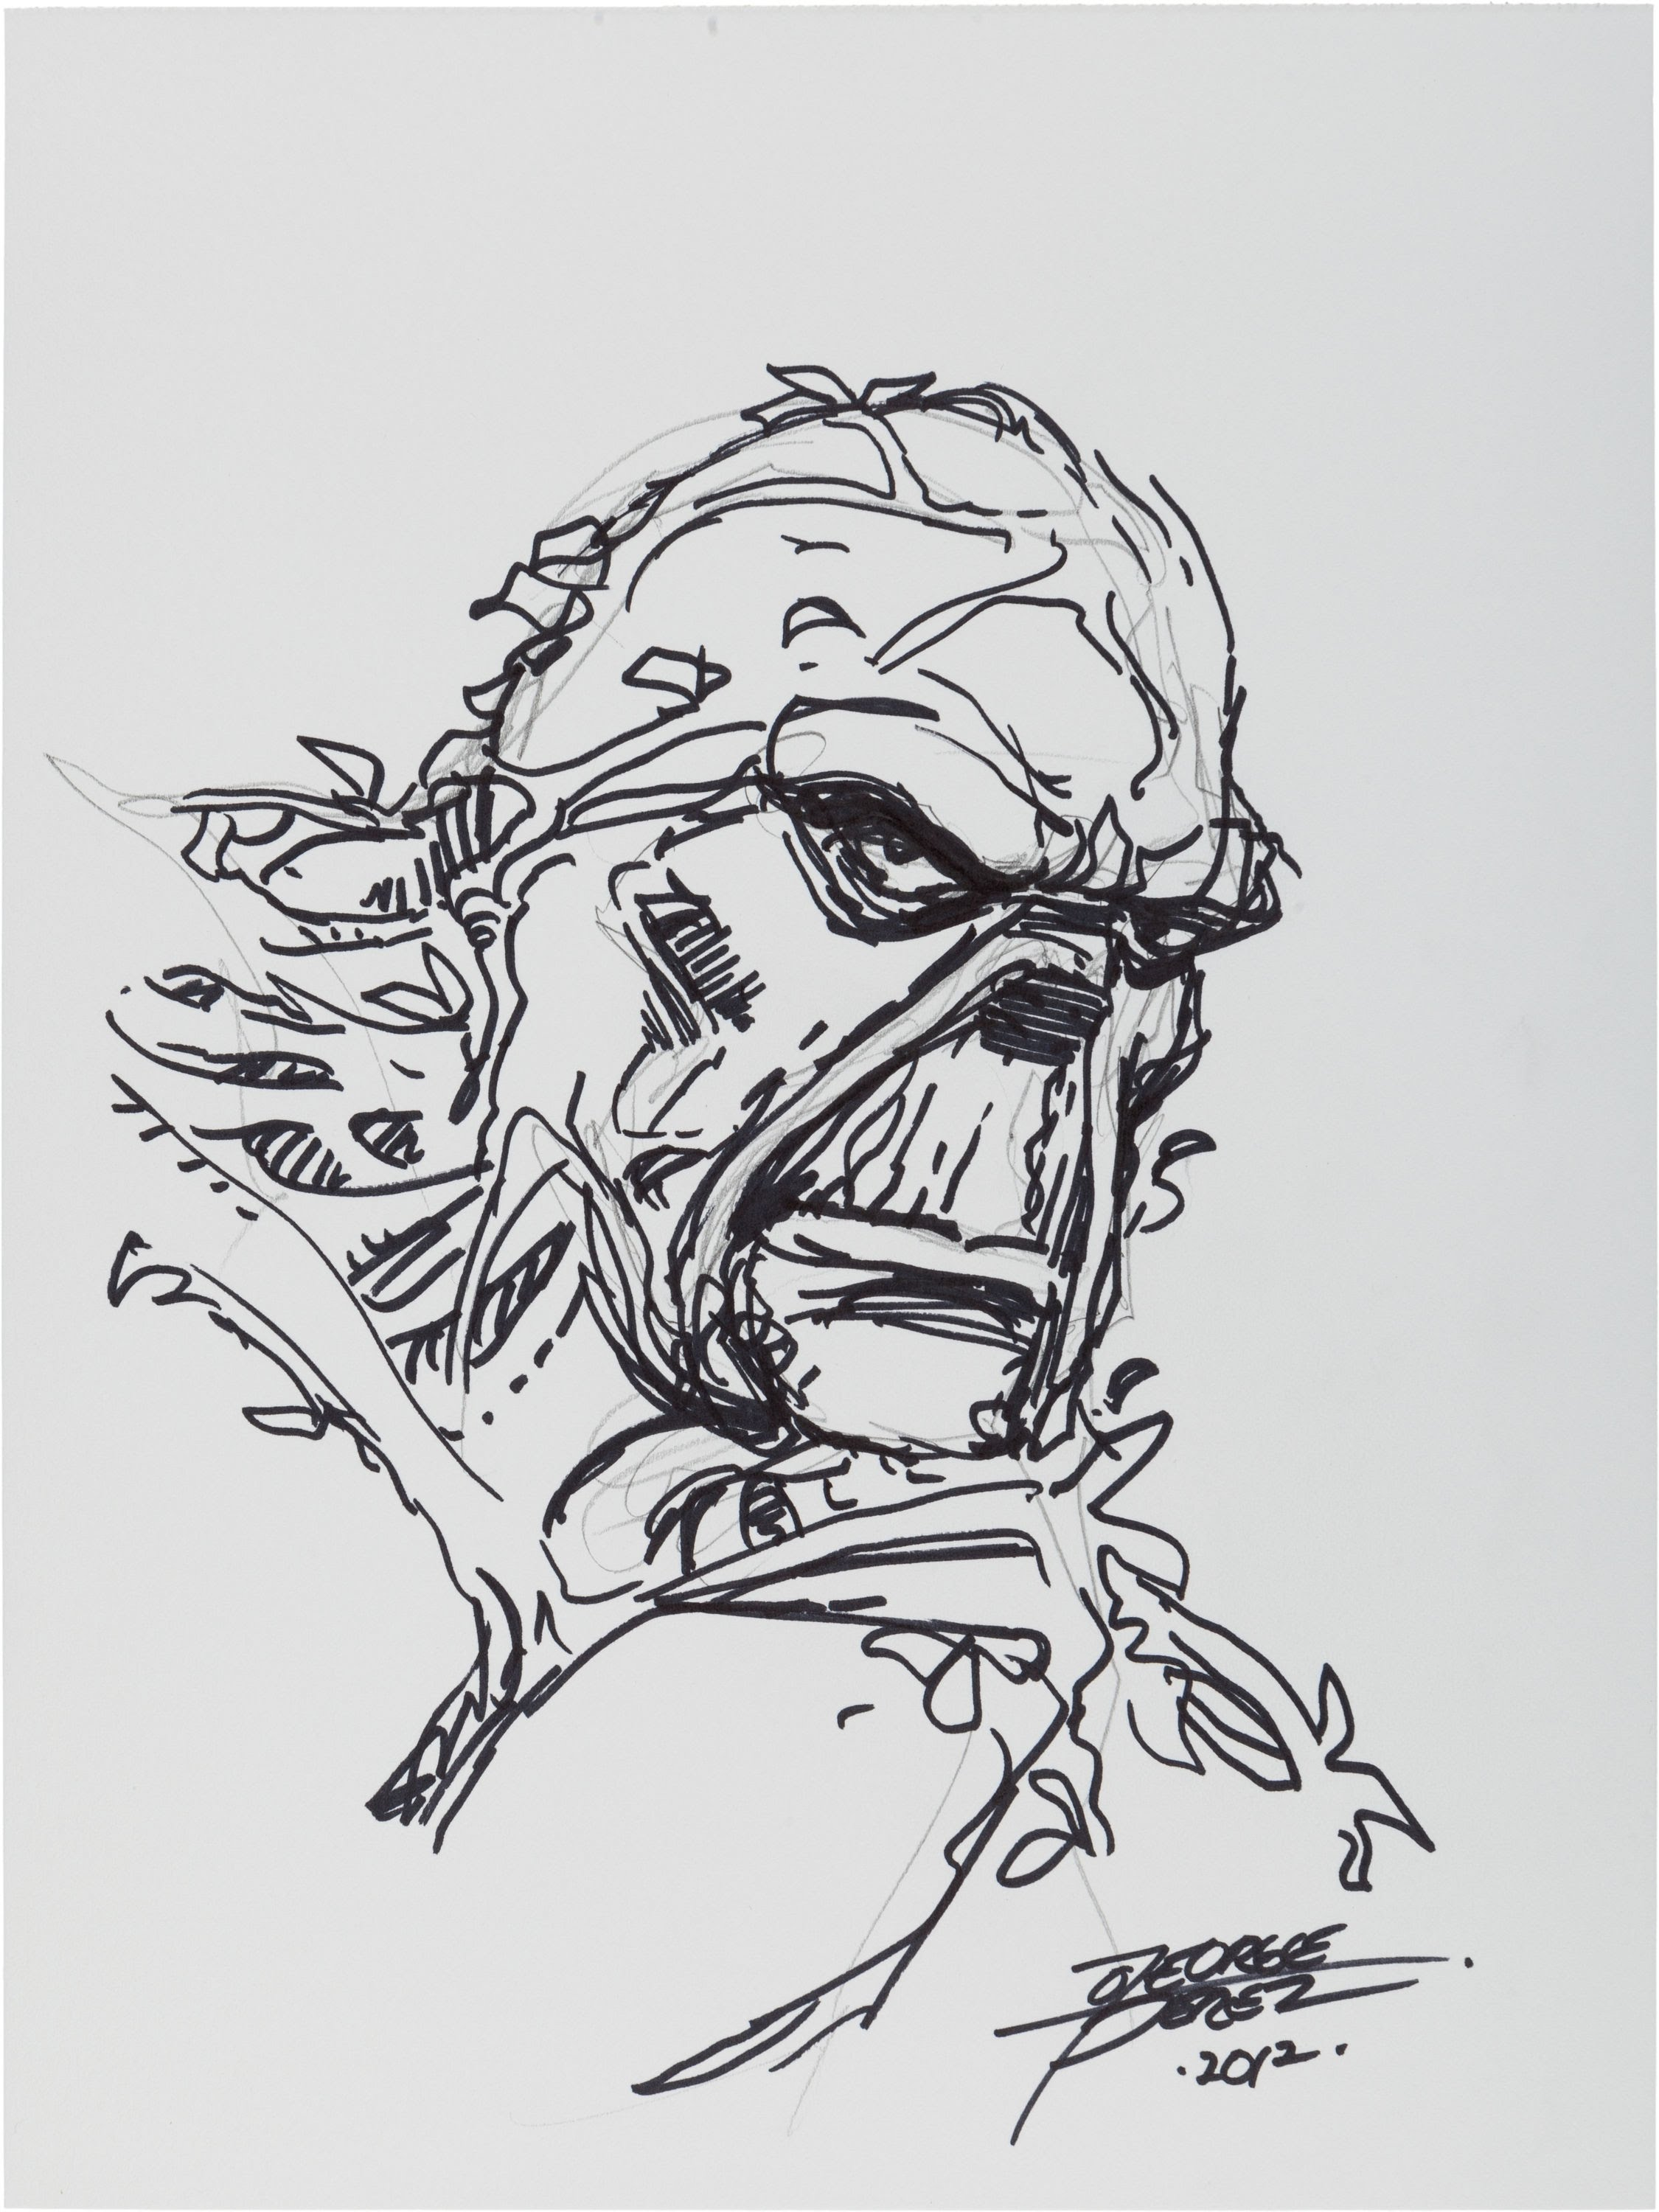 Swamp Thing Art By George Perez From Heritage